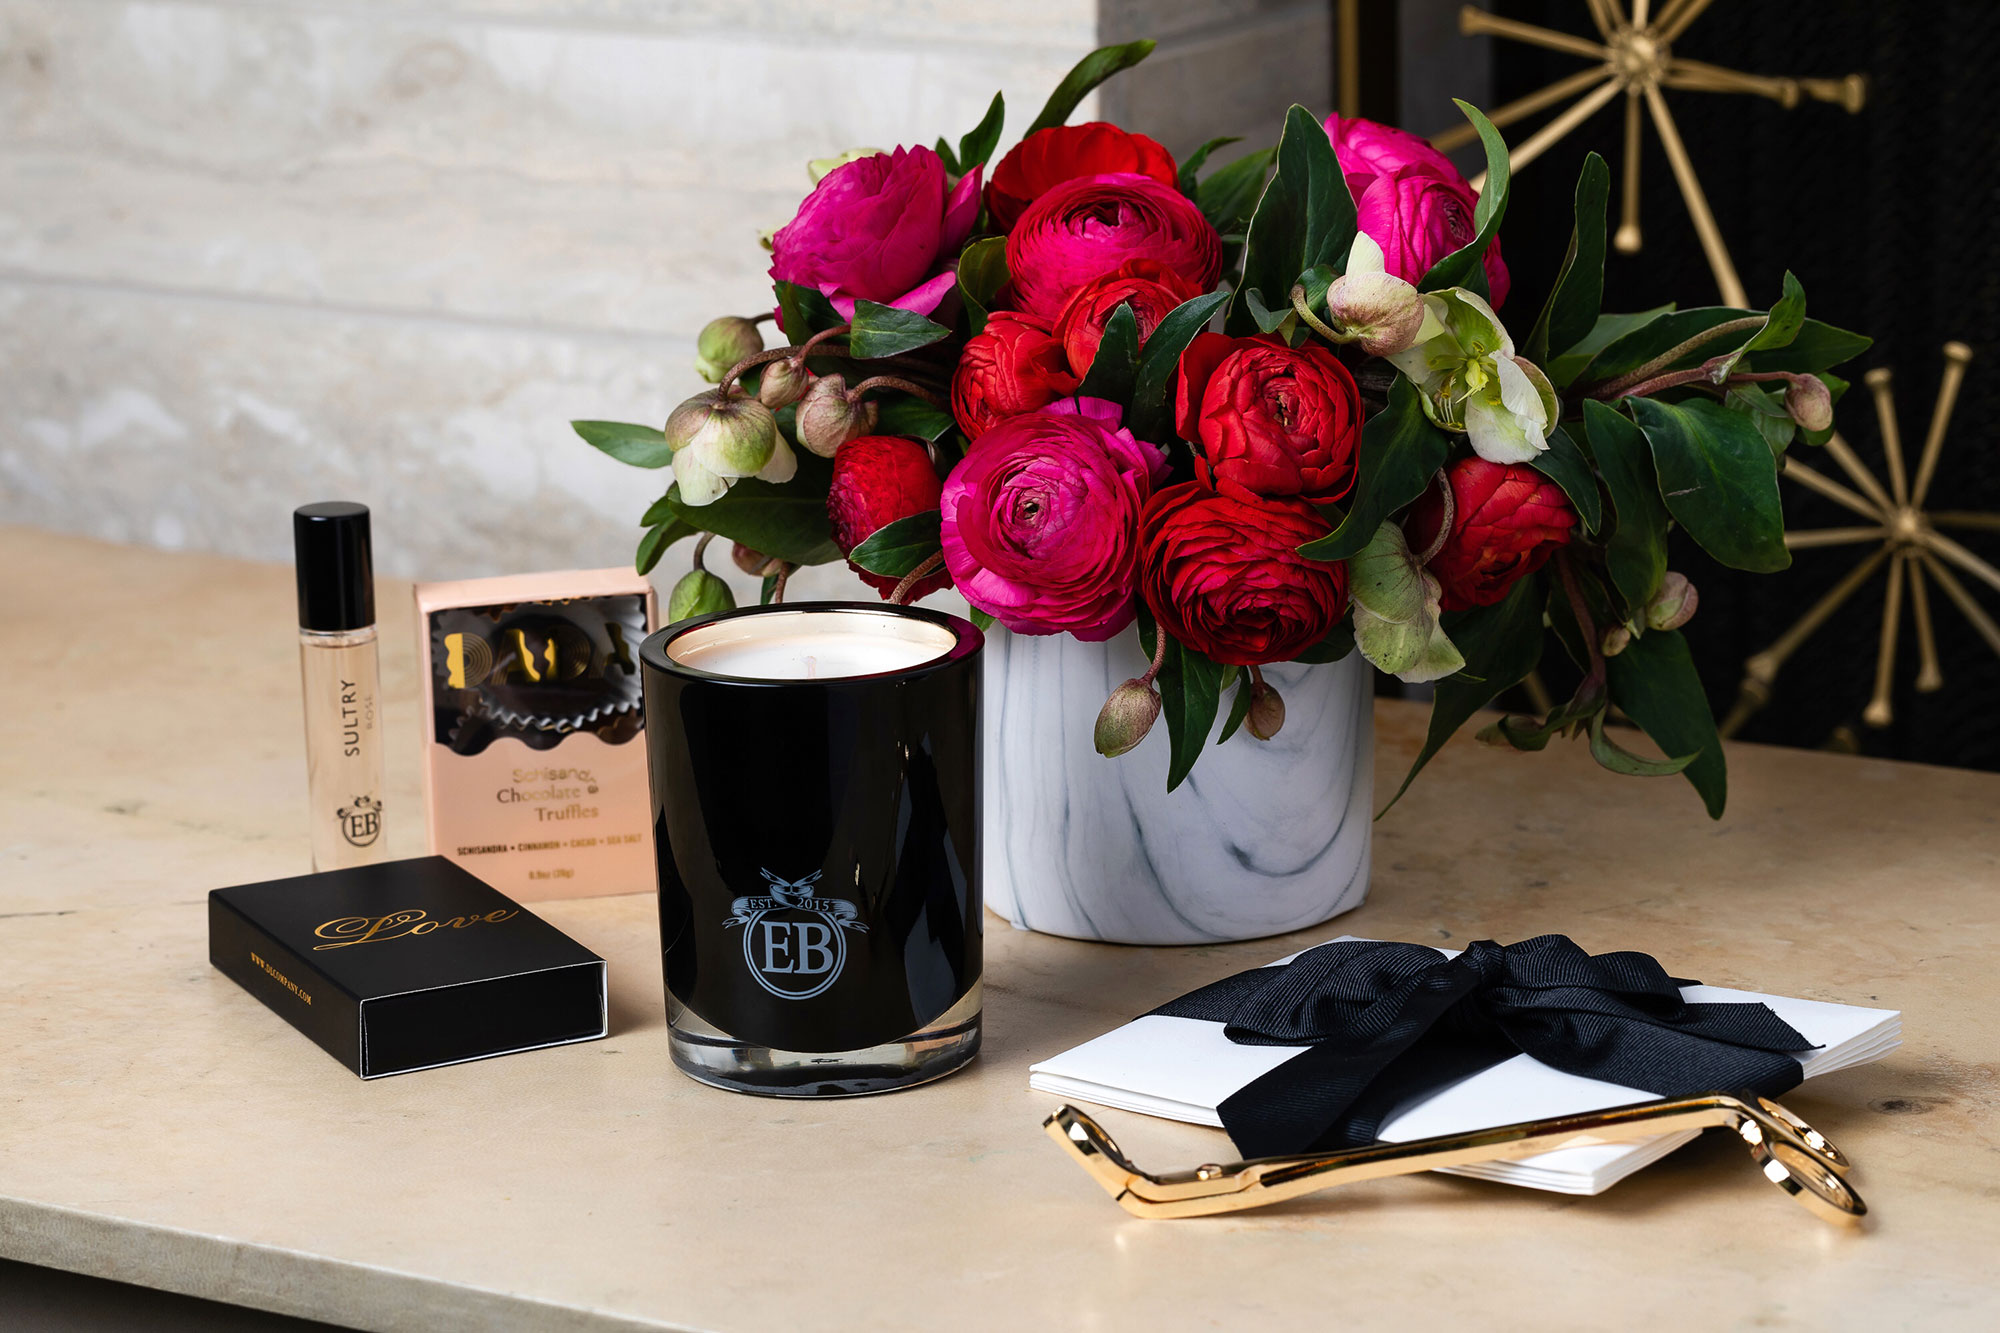 Valentine's Day Gift Guide 2019: Beauty and Fashion Ideas for the Lady in Your Life - The tried-and-true flowers and chocolate combo gets a chic upgrade courtesy of celeb florist Eric Buterbaugh's collab with the truffle connoisseurs at DADA Daily. The gift set also includes a travel-size fragrance and candle, Paddywax wick trimmer, Love DL & Co. matches and notecards.